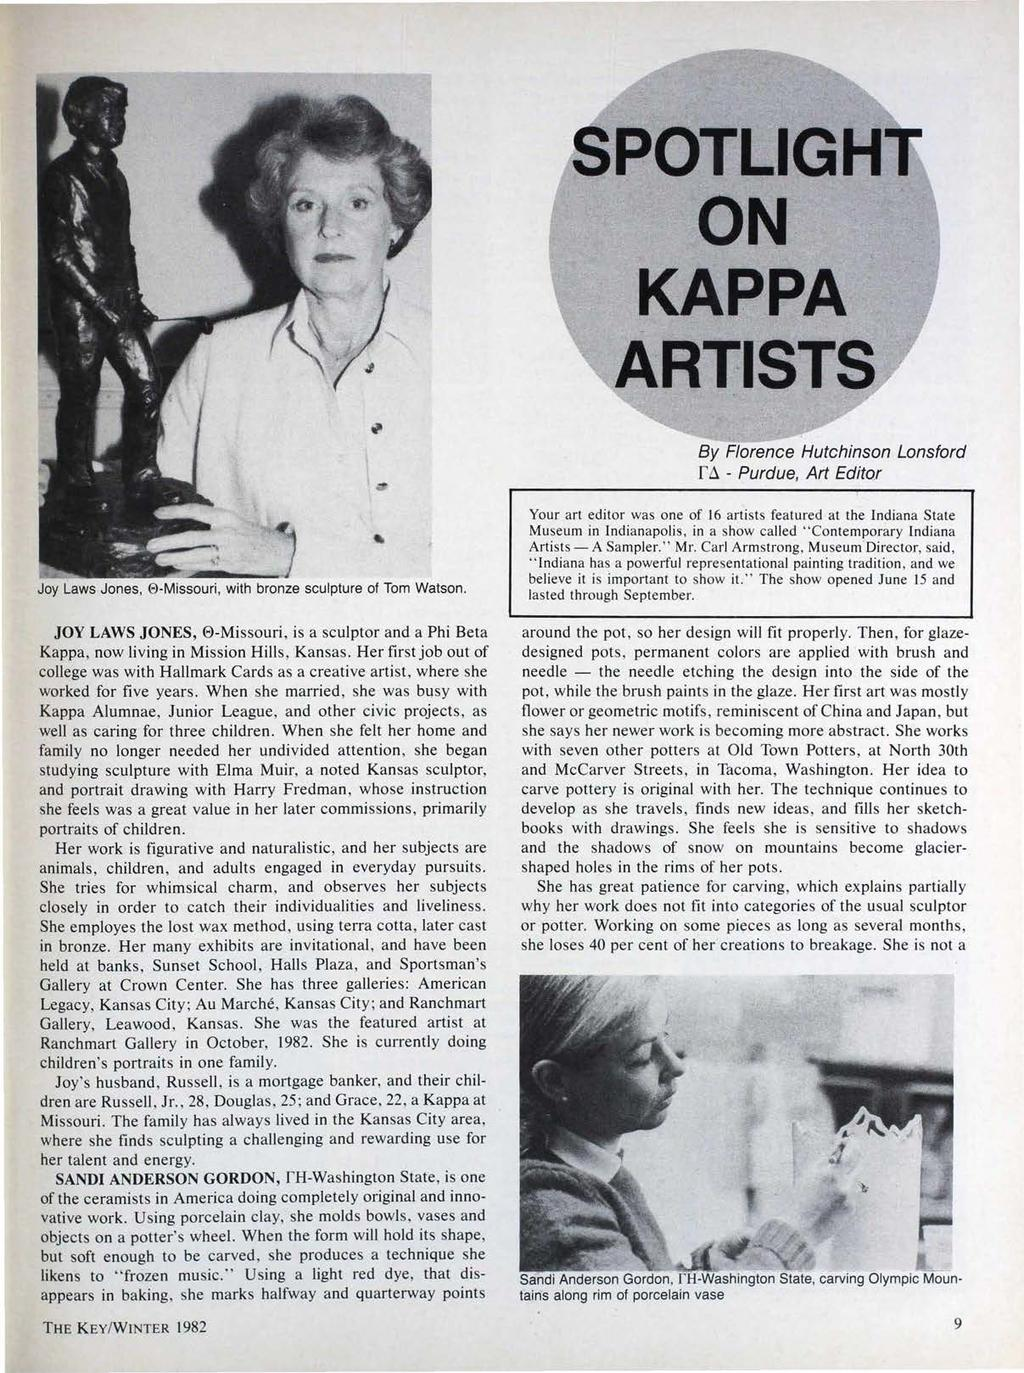 SPOTLIGH ON KAPPA ARTISTS By Florence Hutchinson Lansford f.